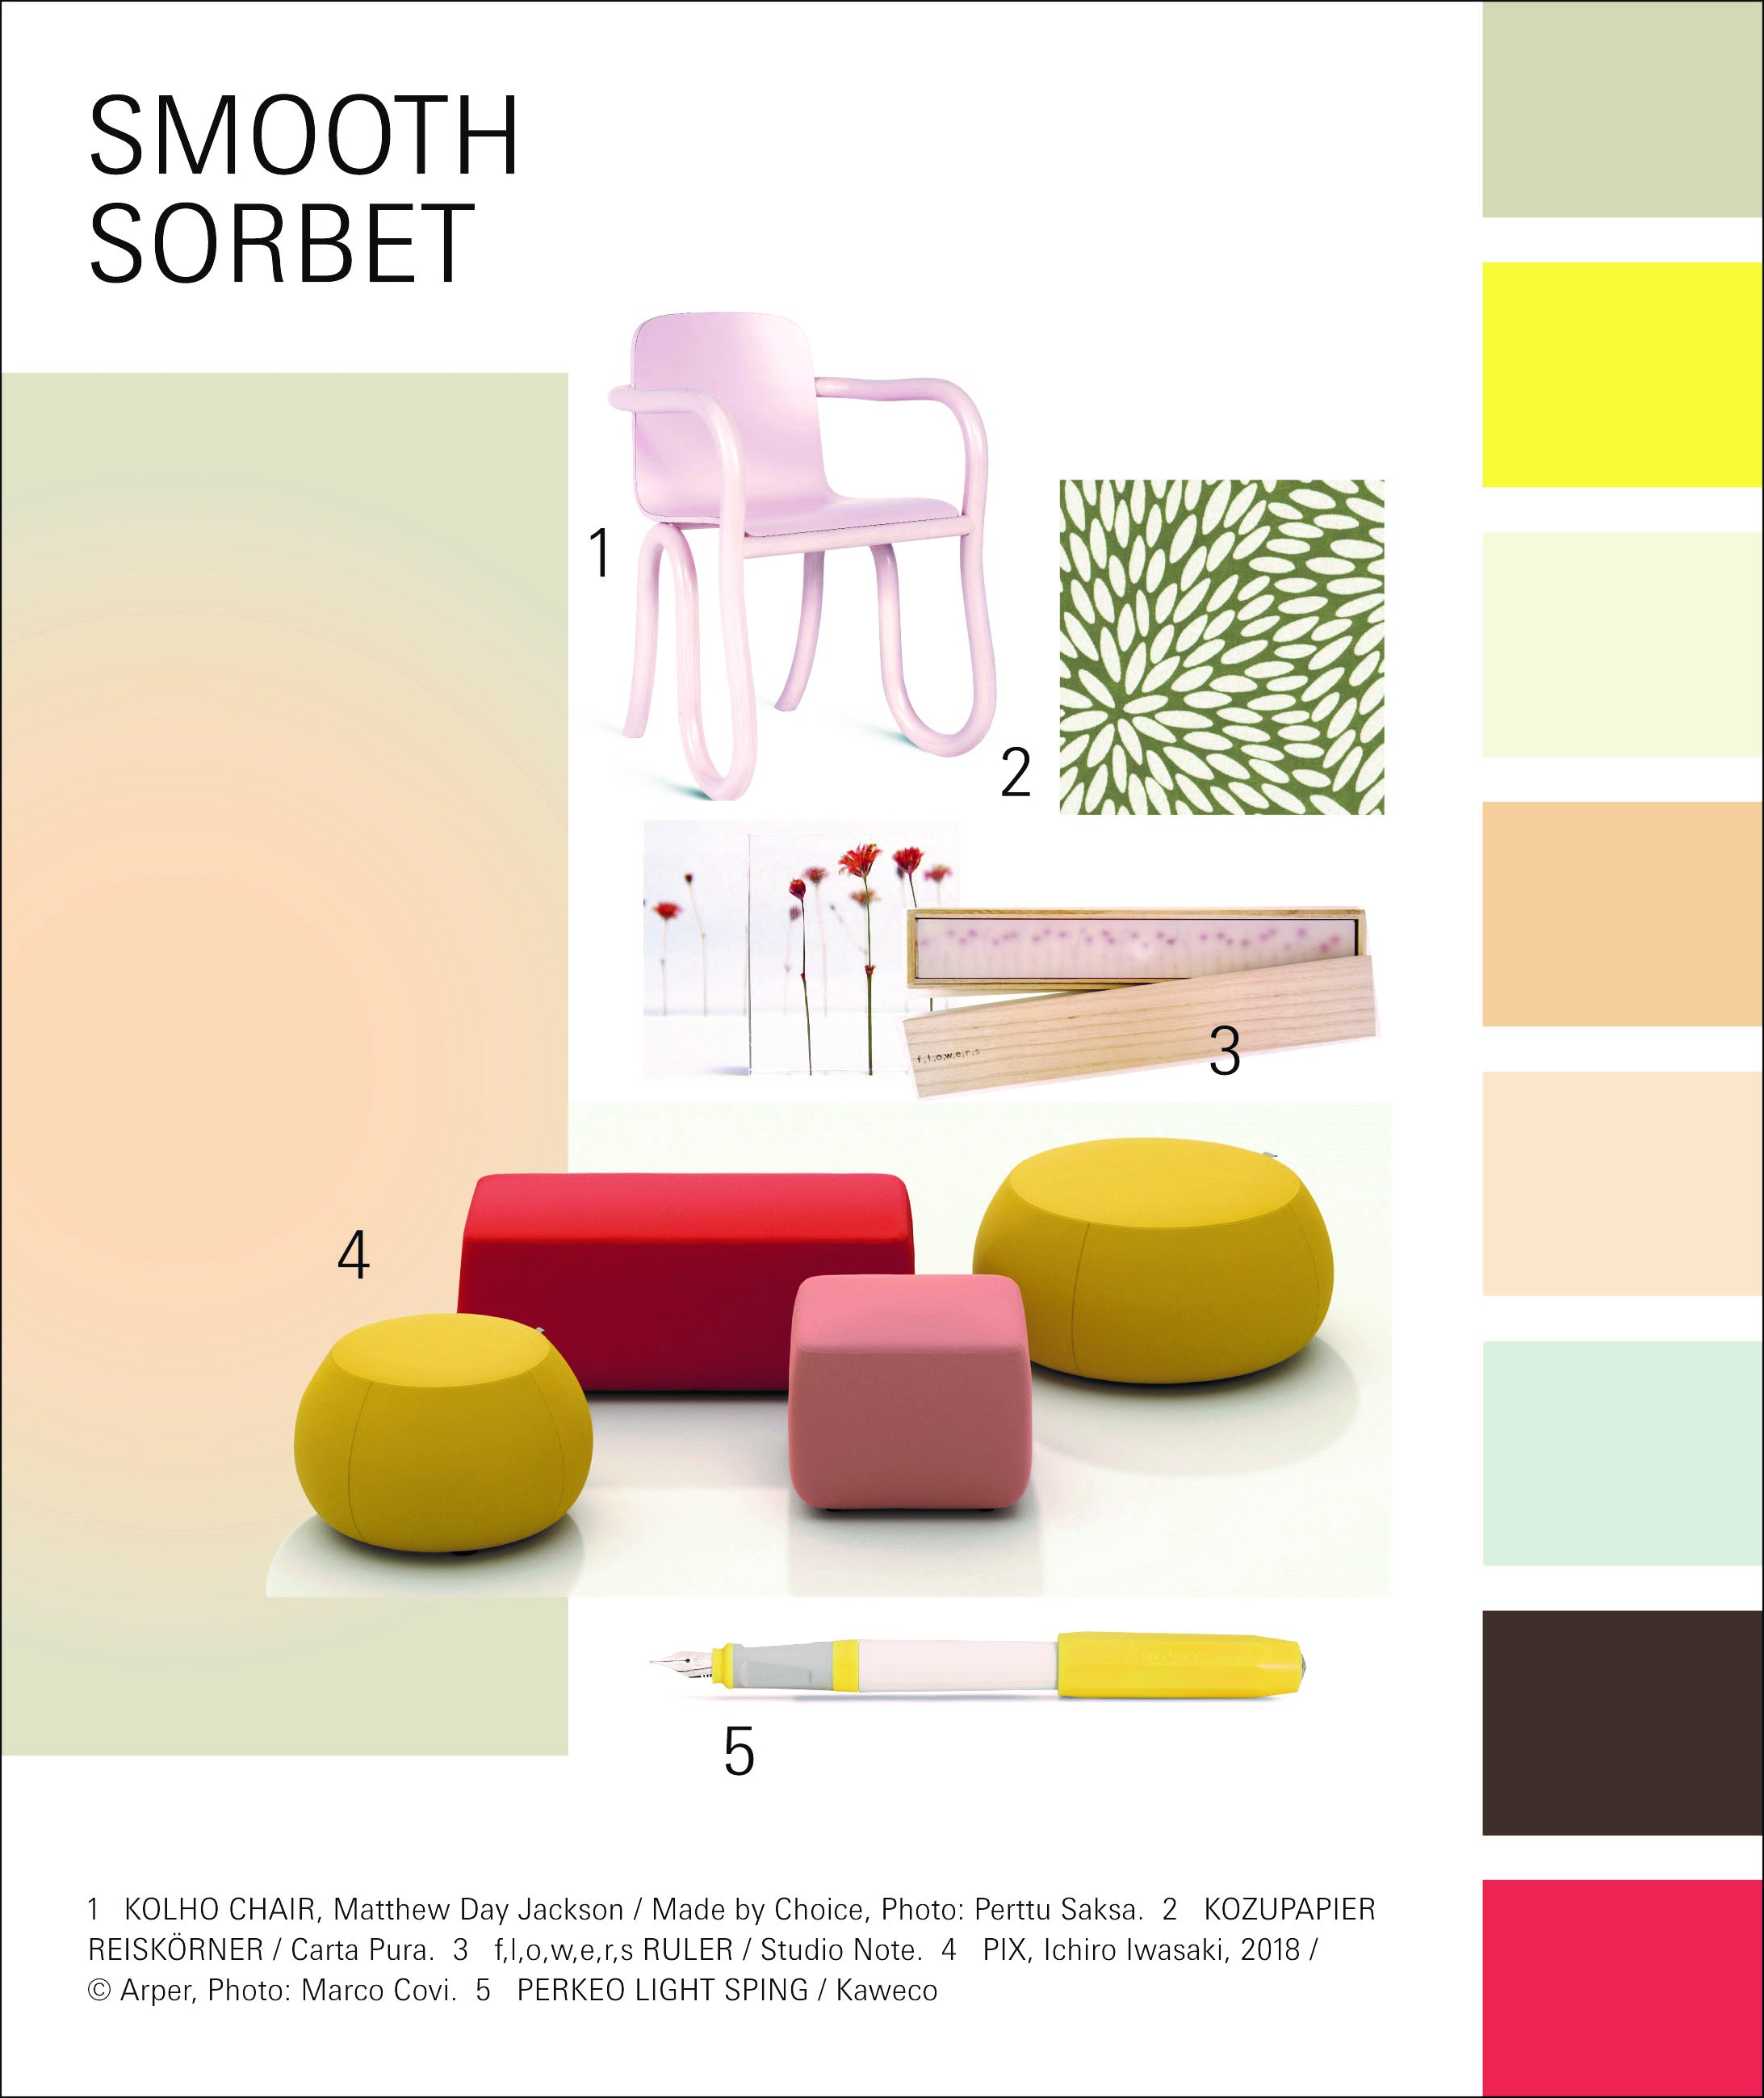 Paperworld Trend 2020/21: Smooth Sorbet